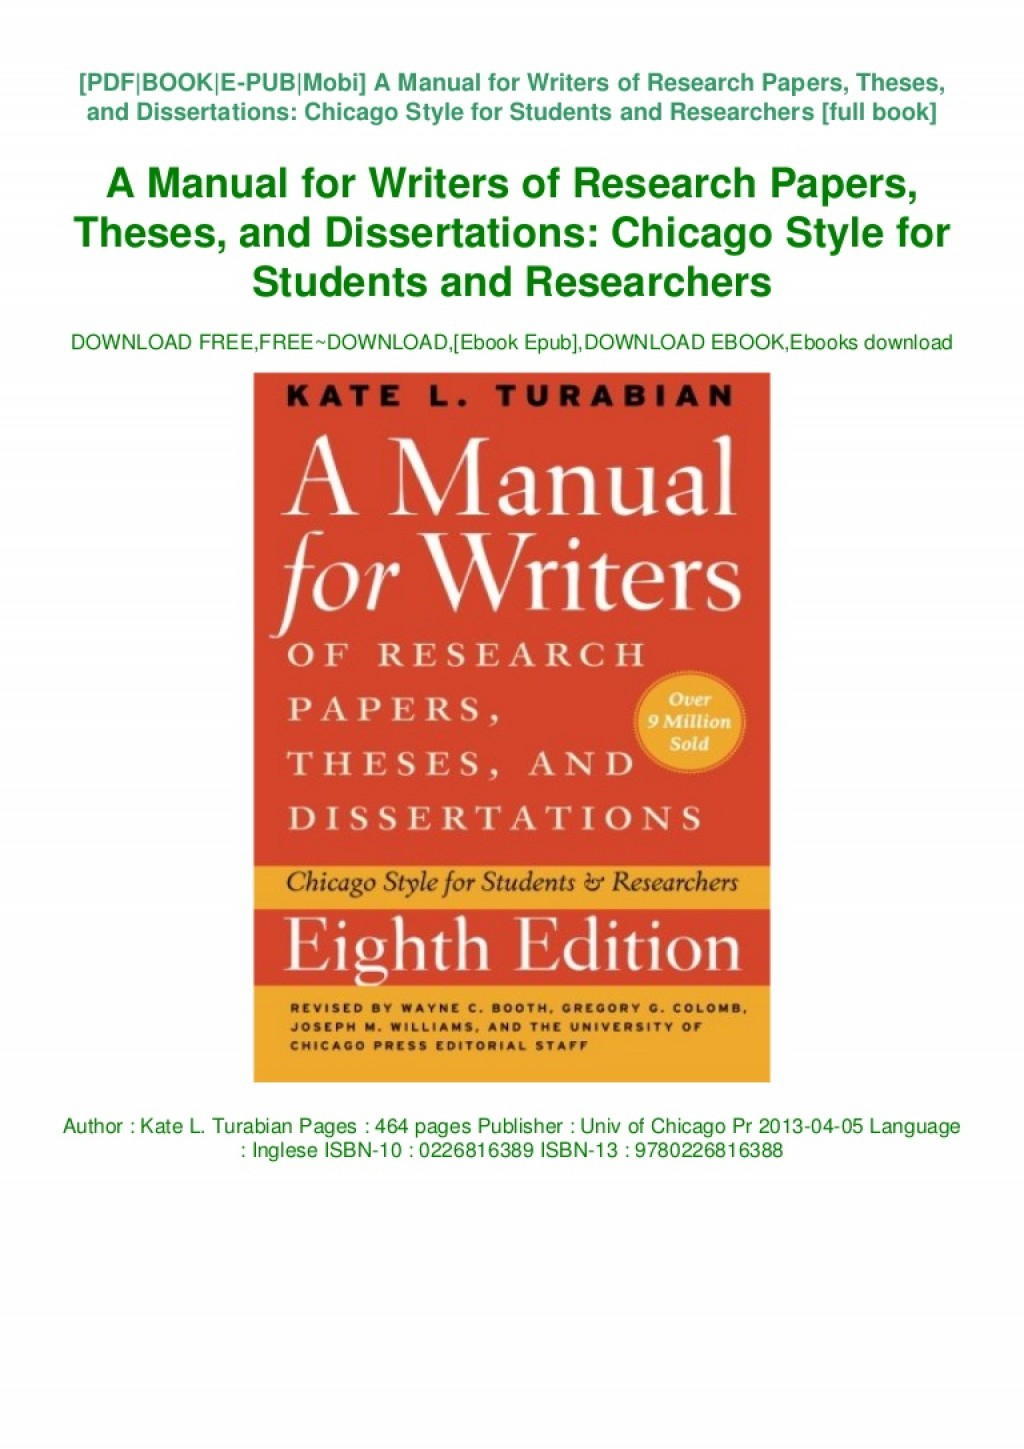 002 Book Manual For Writers Of Research Papers Theses And Thumbnail Paper Dissertations Rare A Download Pdf Large